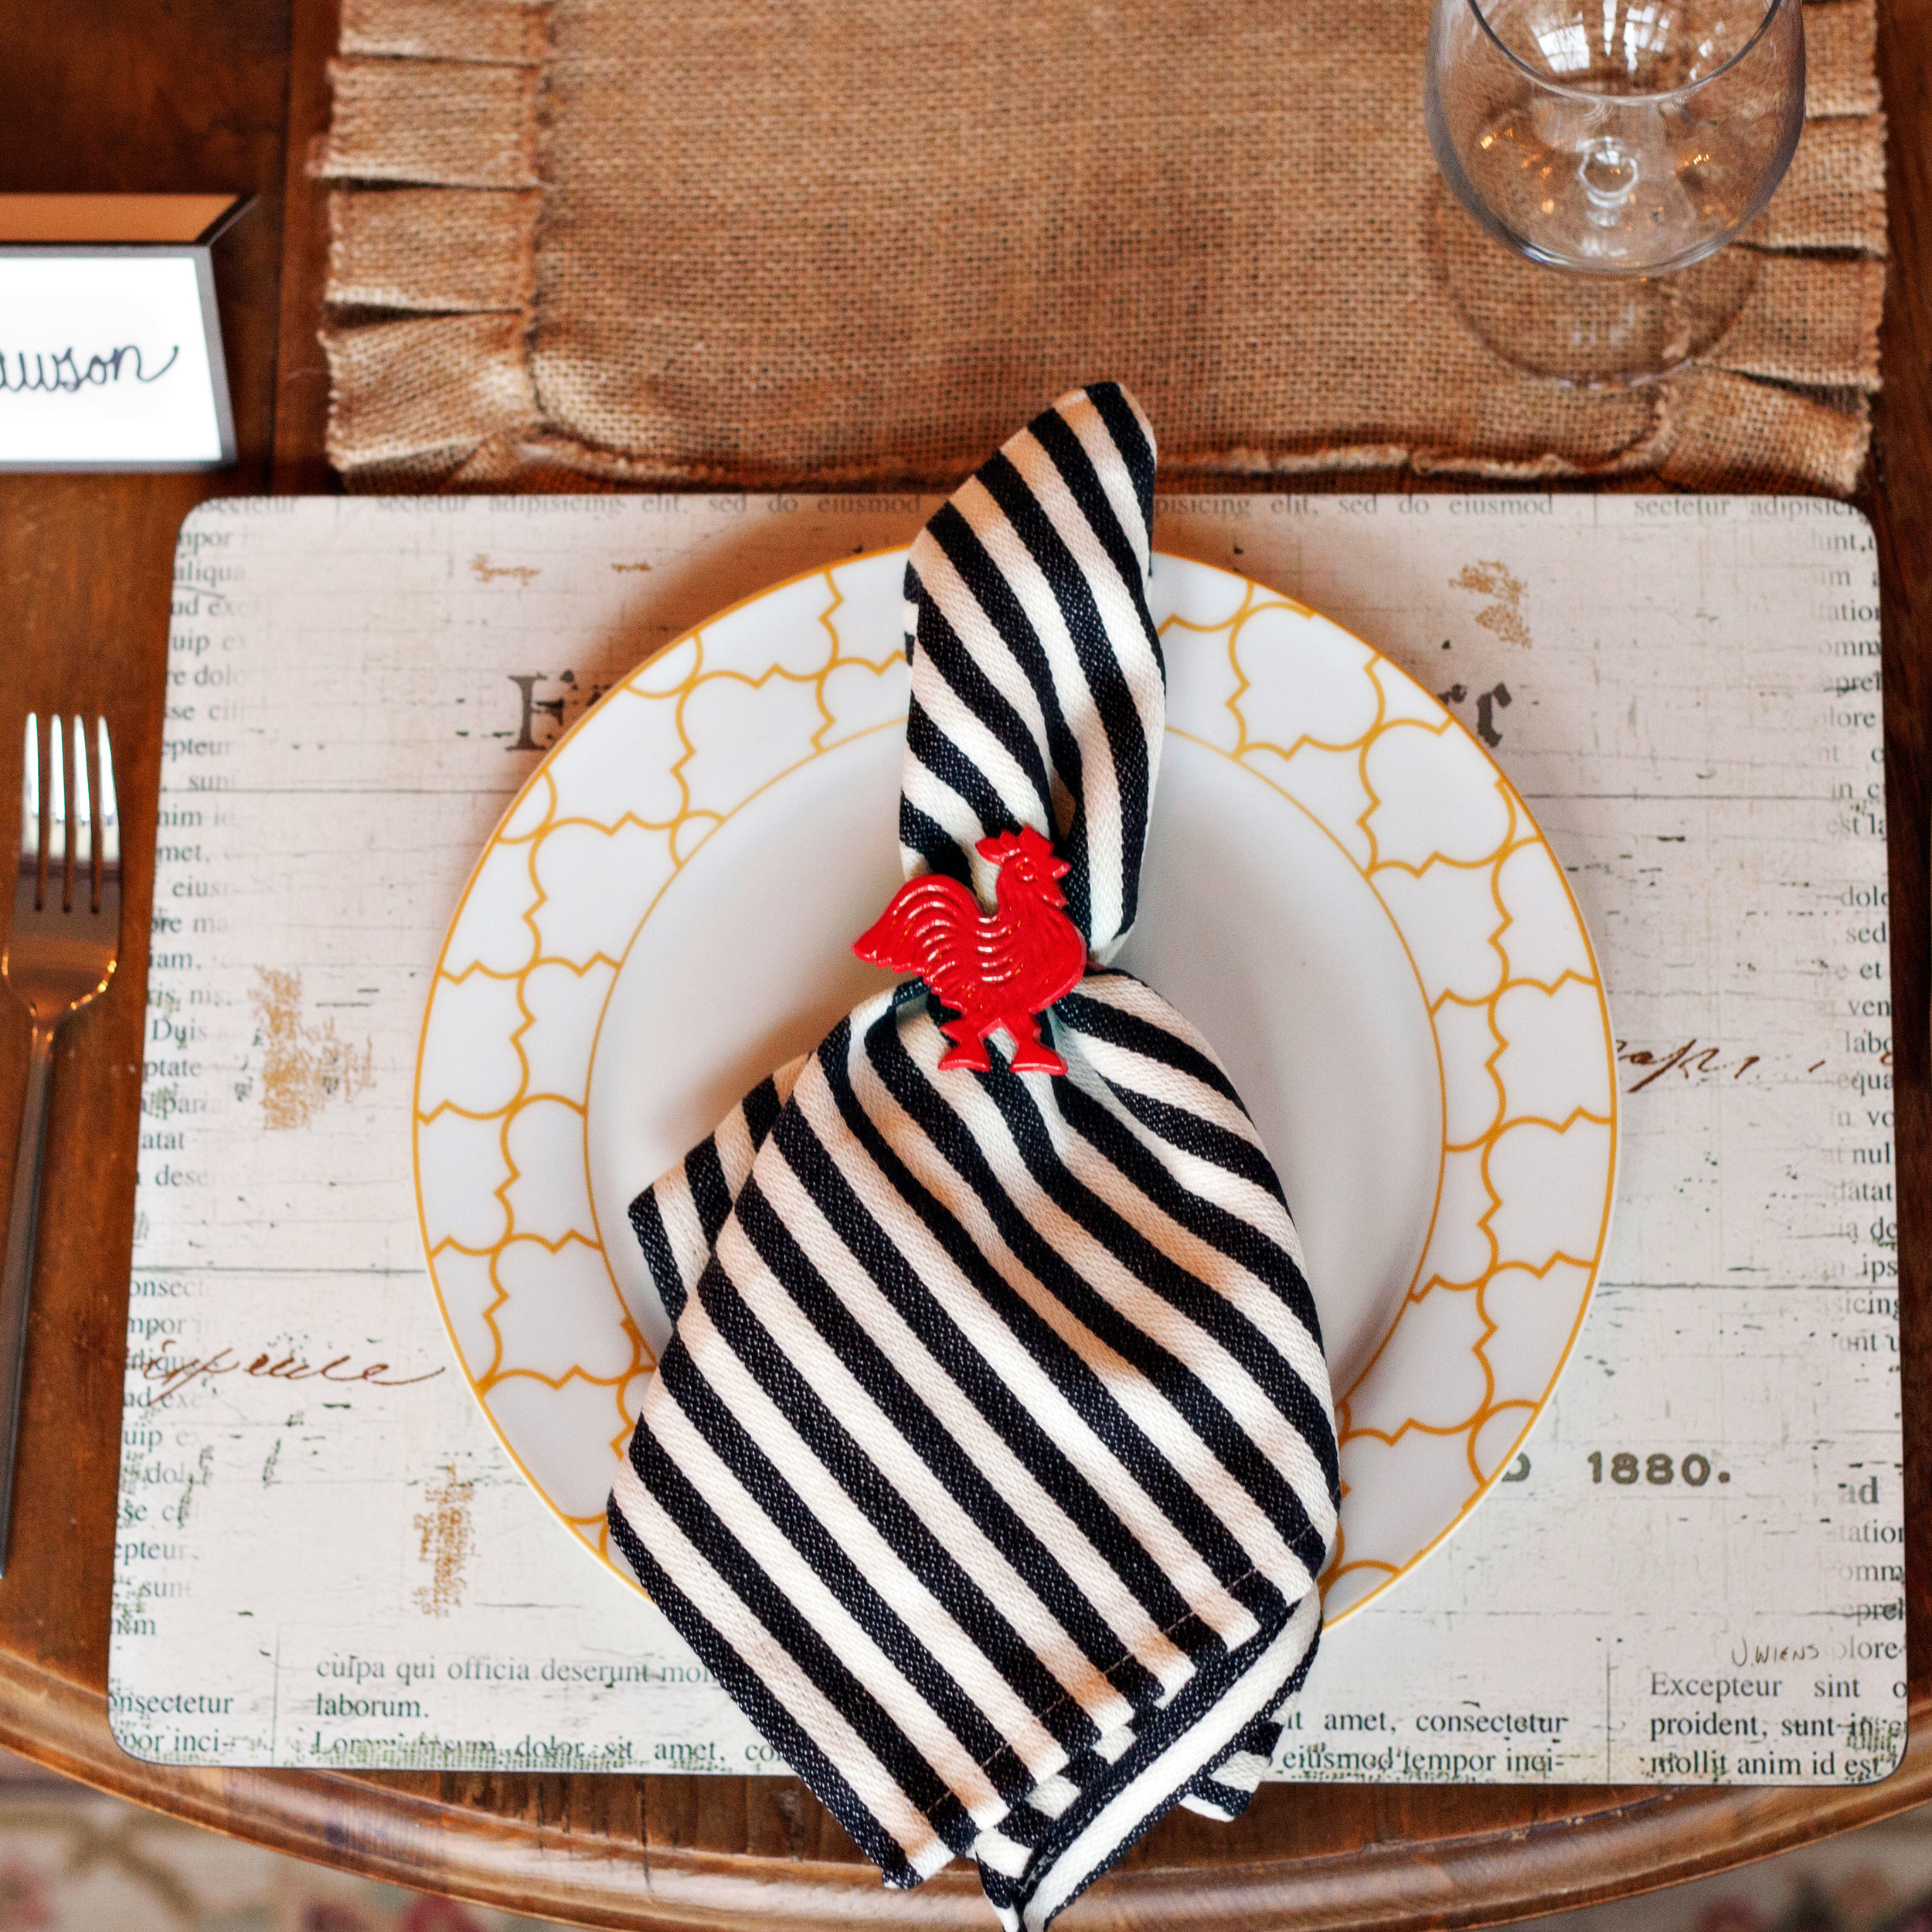 Red Rooster - Tablescape Includes:Table Runner, 'Fresh Eggs' Hardboard Placemat, Plate, Black/Cream Striped Napkin, Red Rooster Napkin Ring, and Place Card$14.99 per tablescapeYour Red Rooster Table Setting will surely make your guests smile as they sit down to enjoy your time together! Burlap, cream and a pop of red create a lovely festive feel. This tablescape has everything needed to leave your guests feeling like 'Life is good in the coop'.